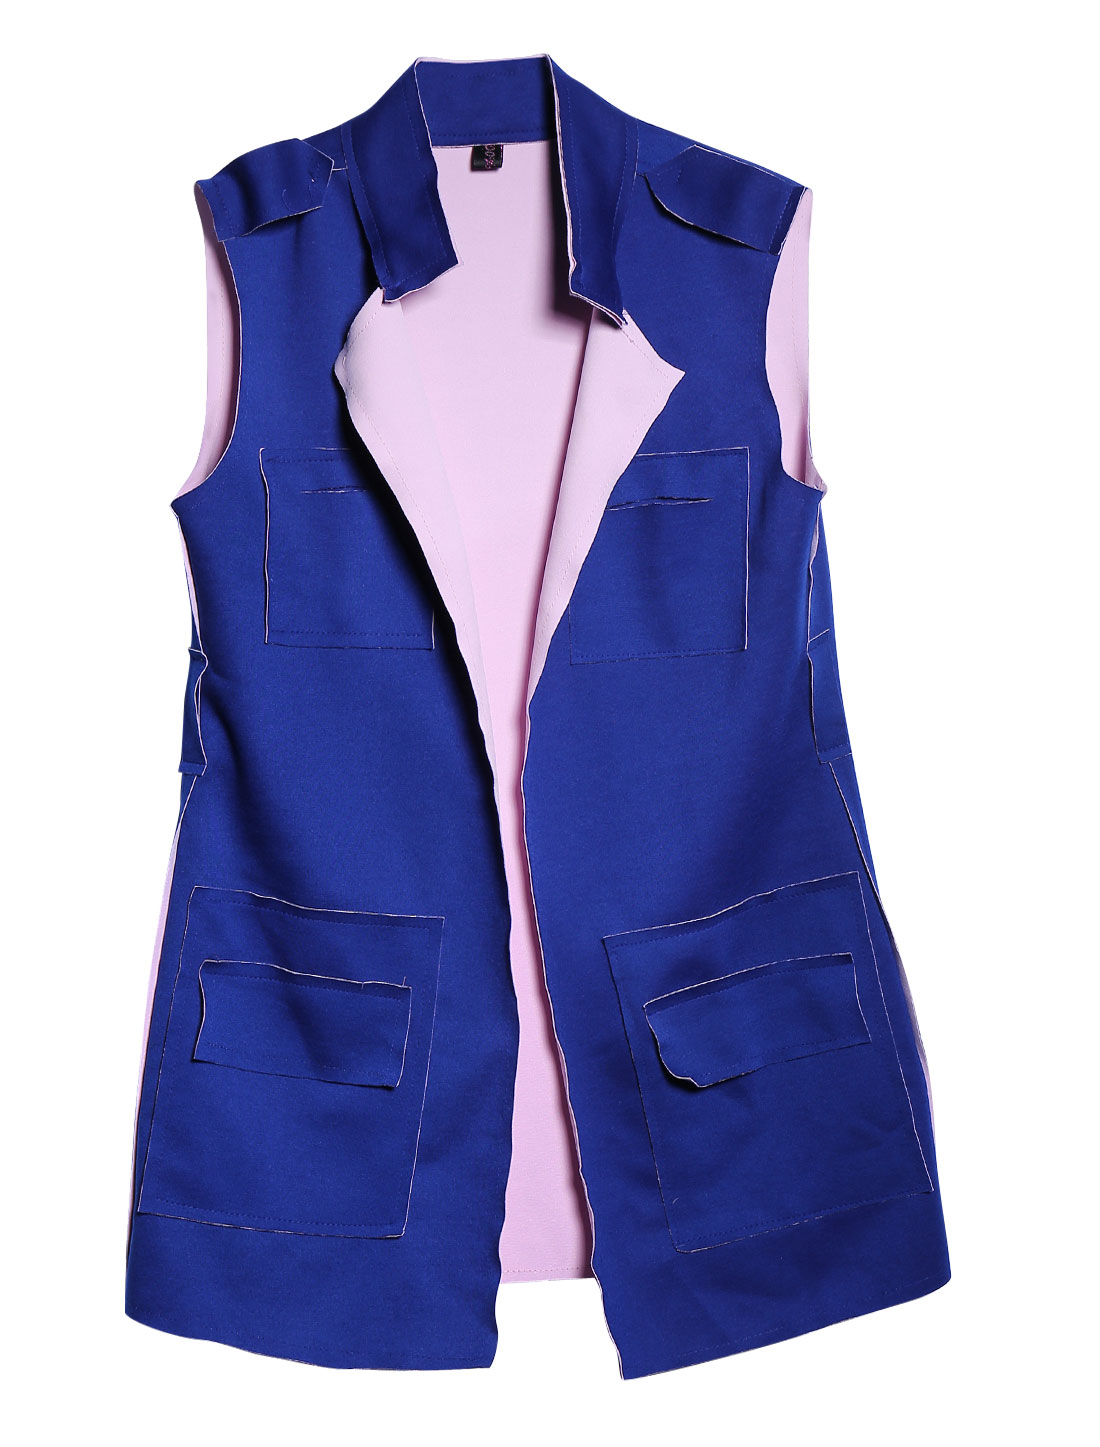 Women Stand Collar Ubound Seam Design Sleeveless Casual Long Vest Royal Blue XS